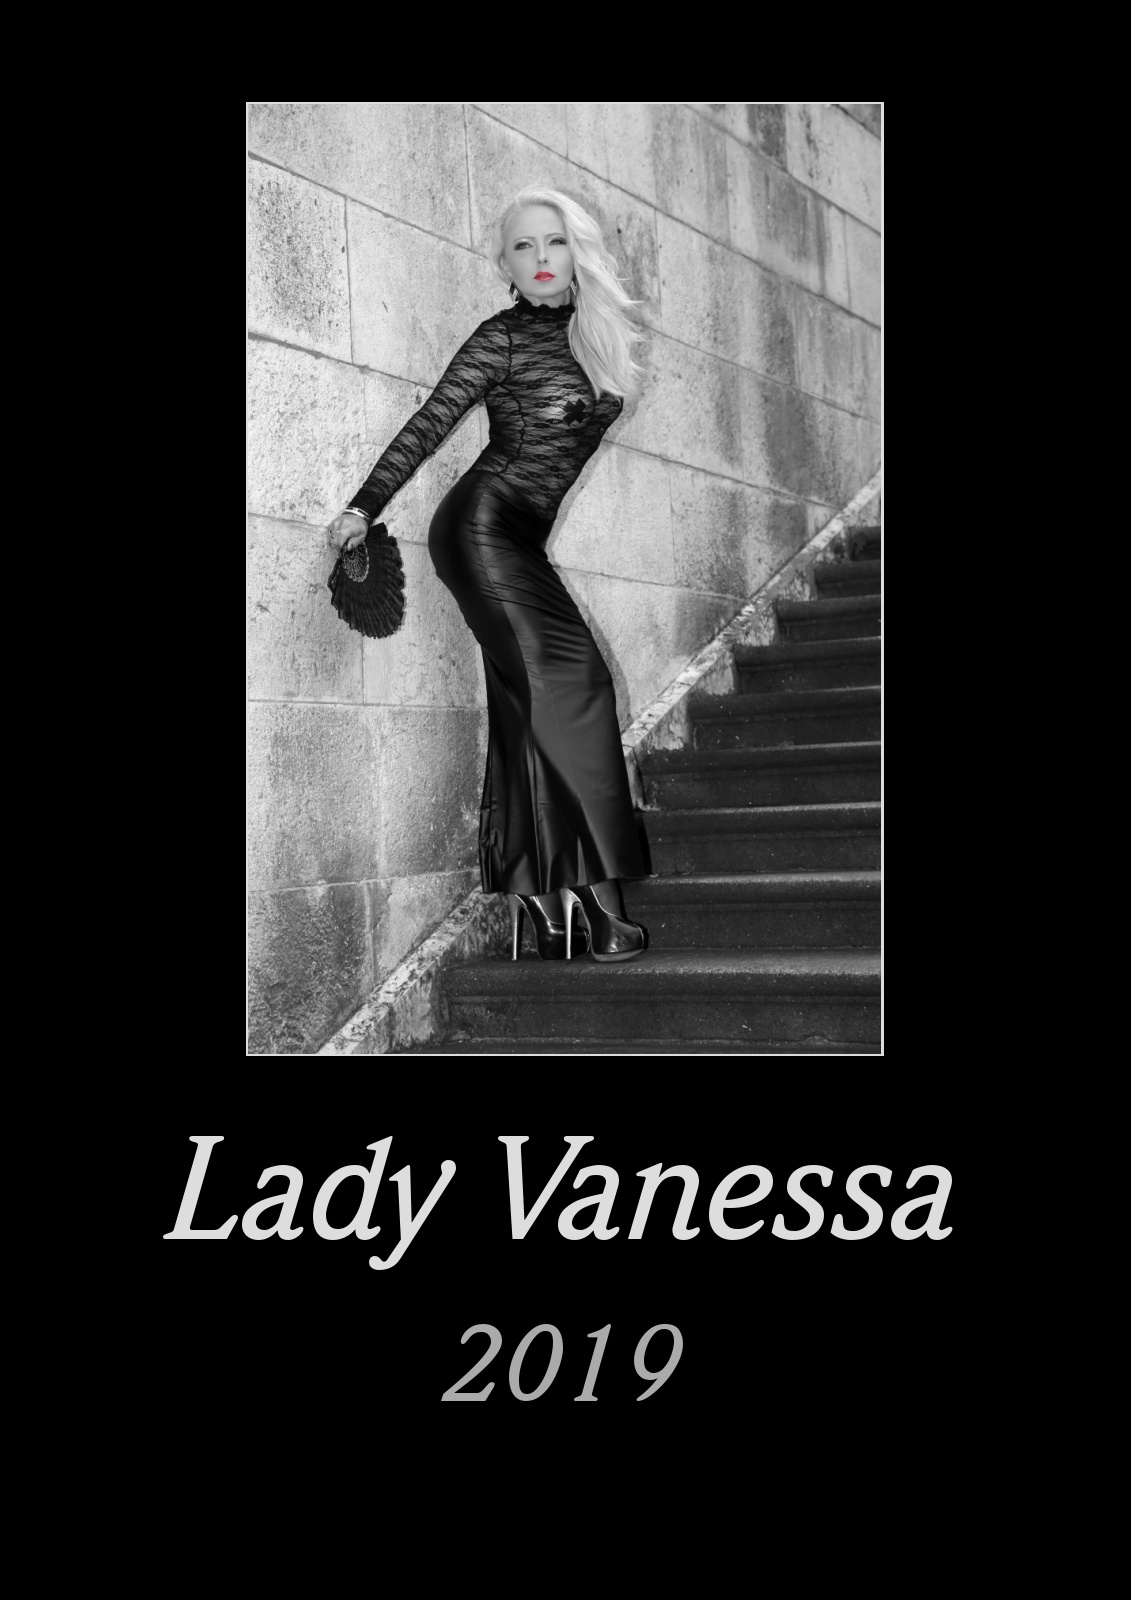 Lady Vanessa Kalender 2019 black/white